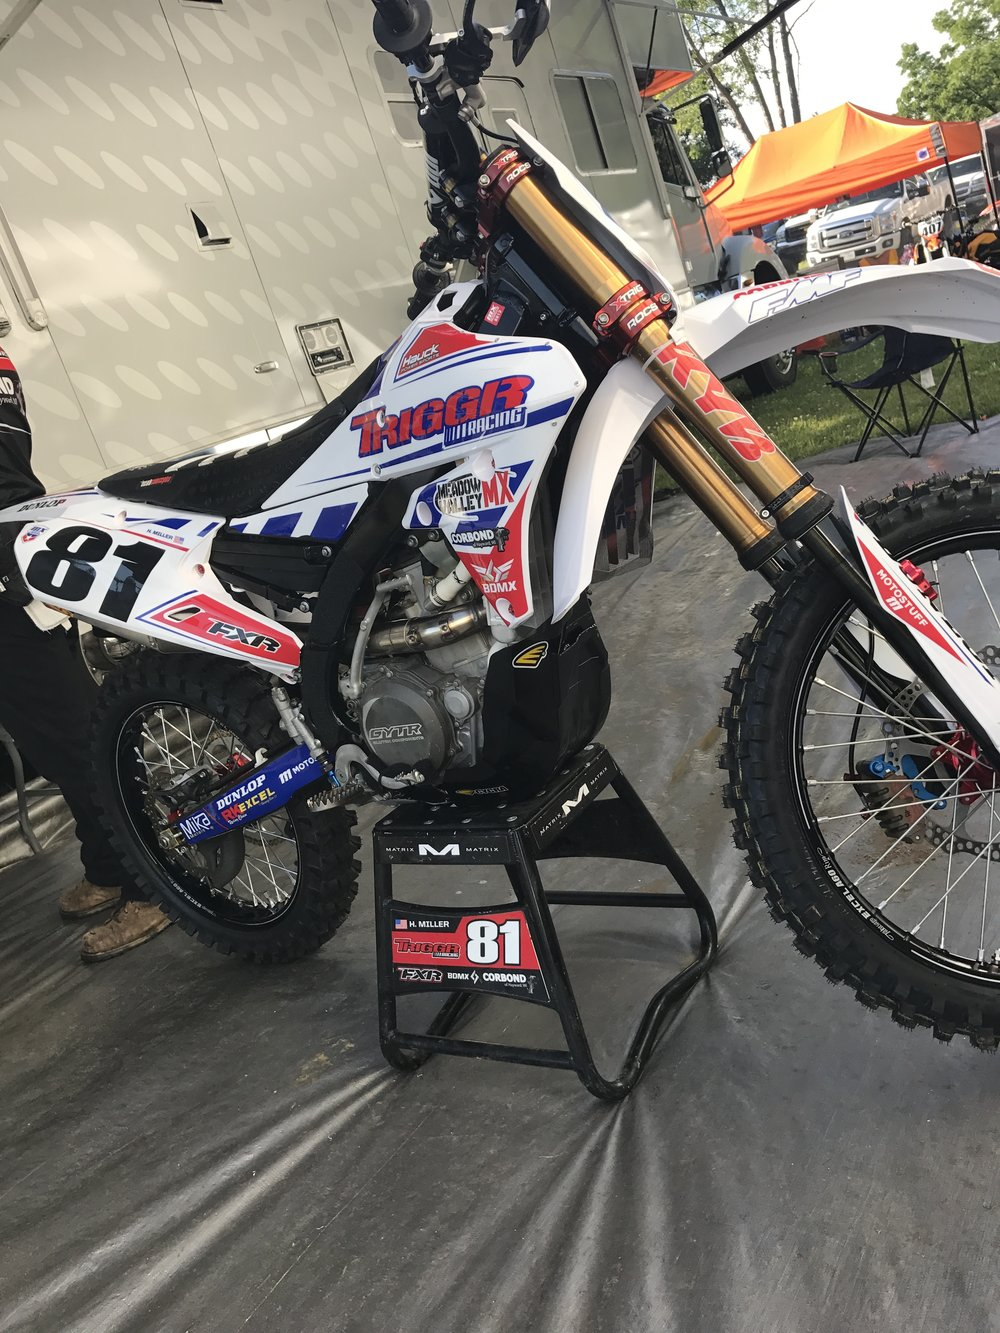 The  Triggr Racing  team always has a killer look to their bikes and they went all out for the Holiday weekend race at Red Bud!